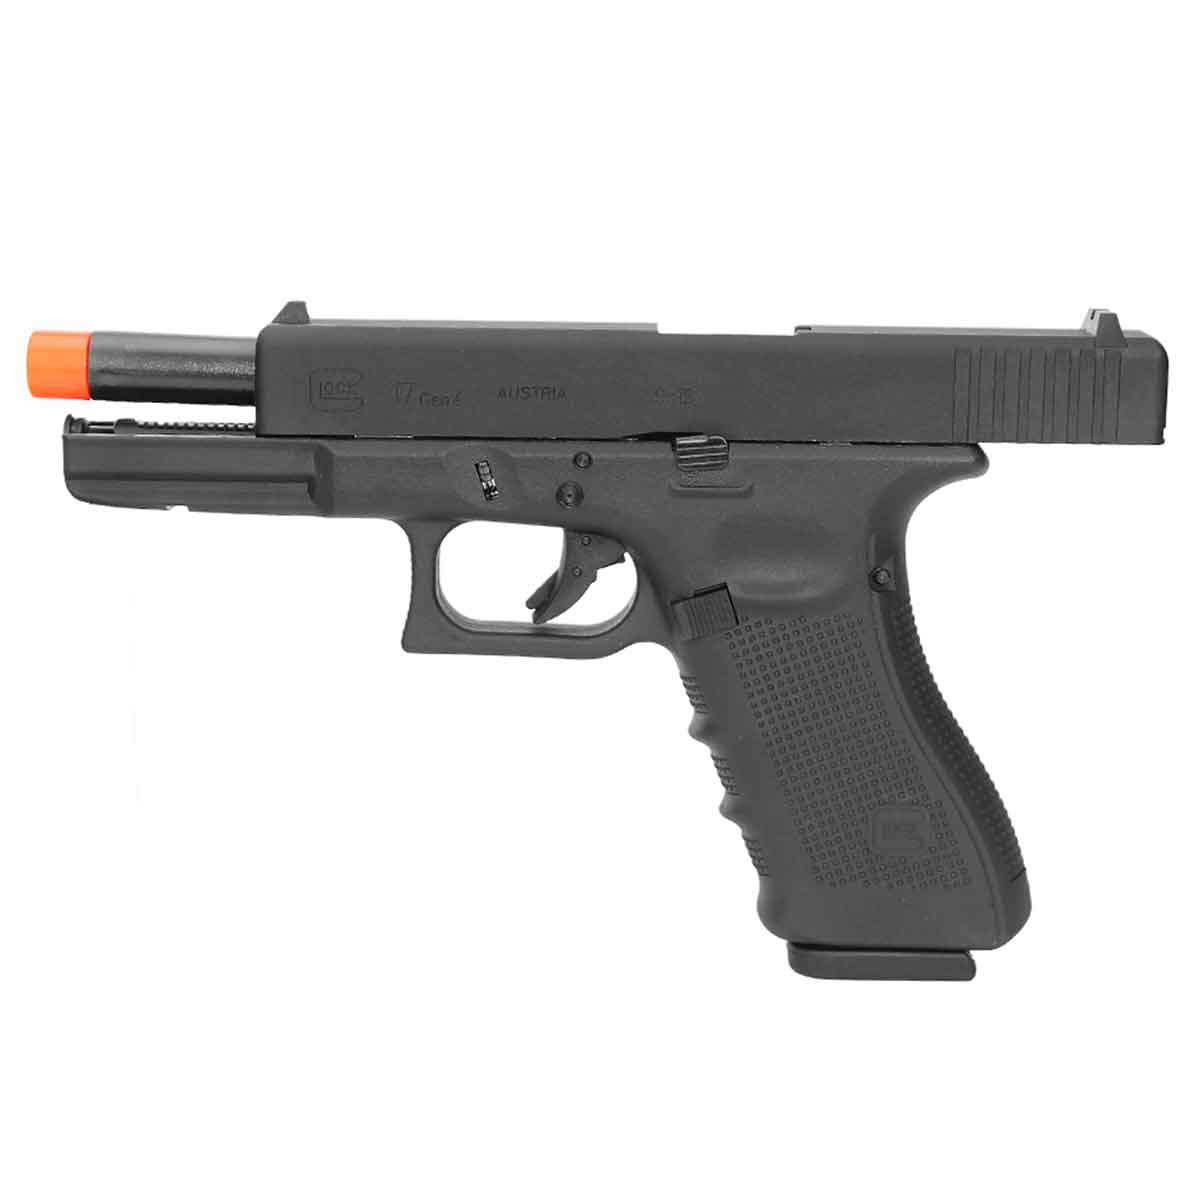 Pistola Umarex Airsoft CO2 GBB Glock G17 Calibre 6mm